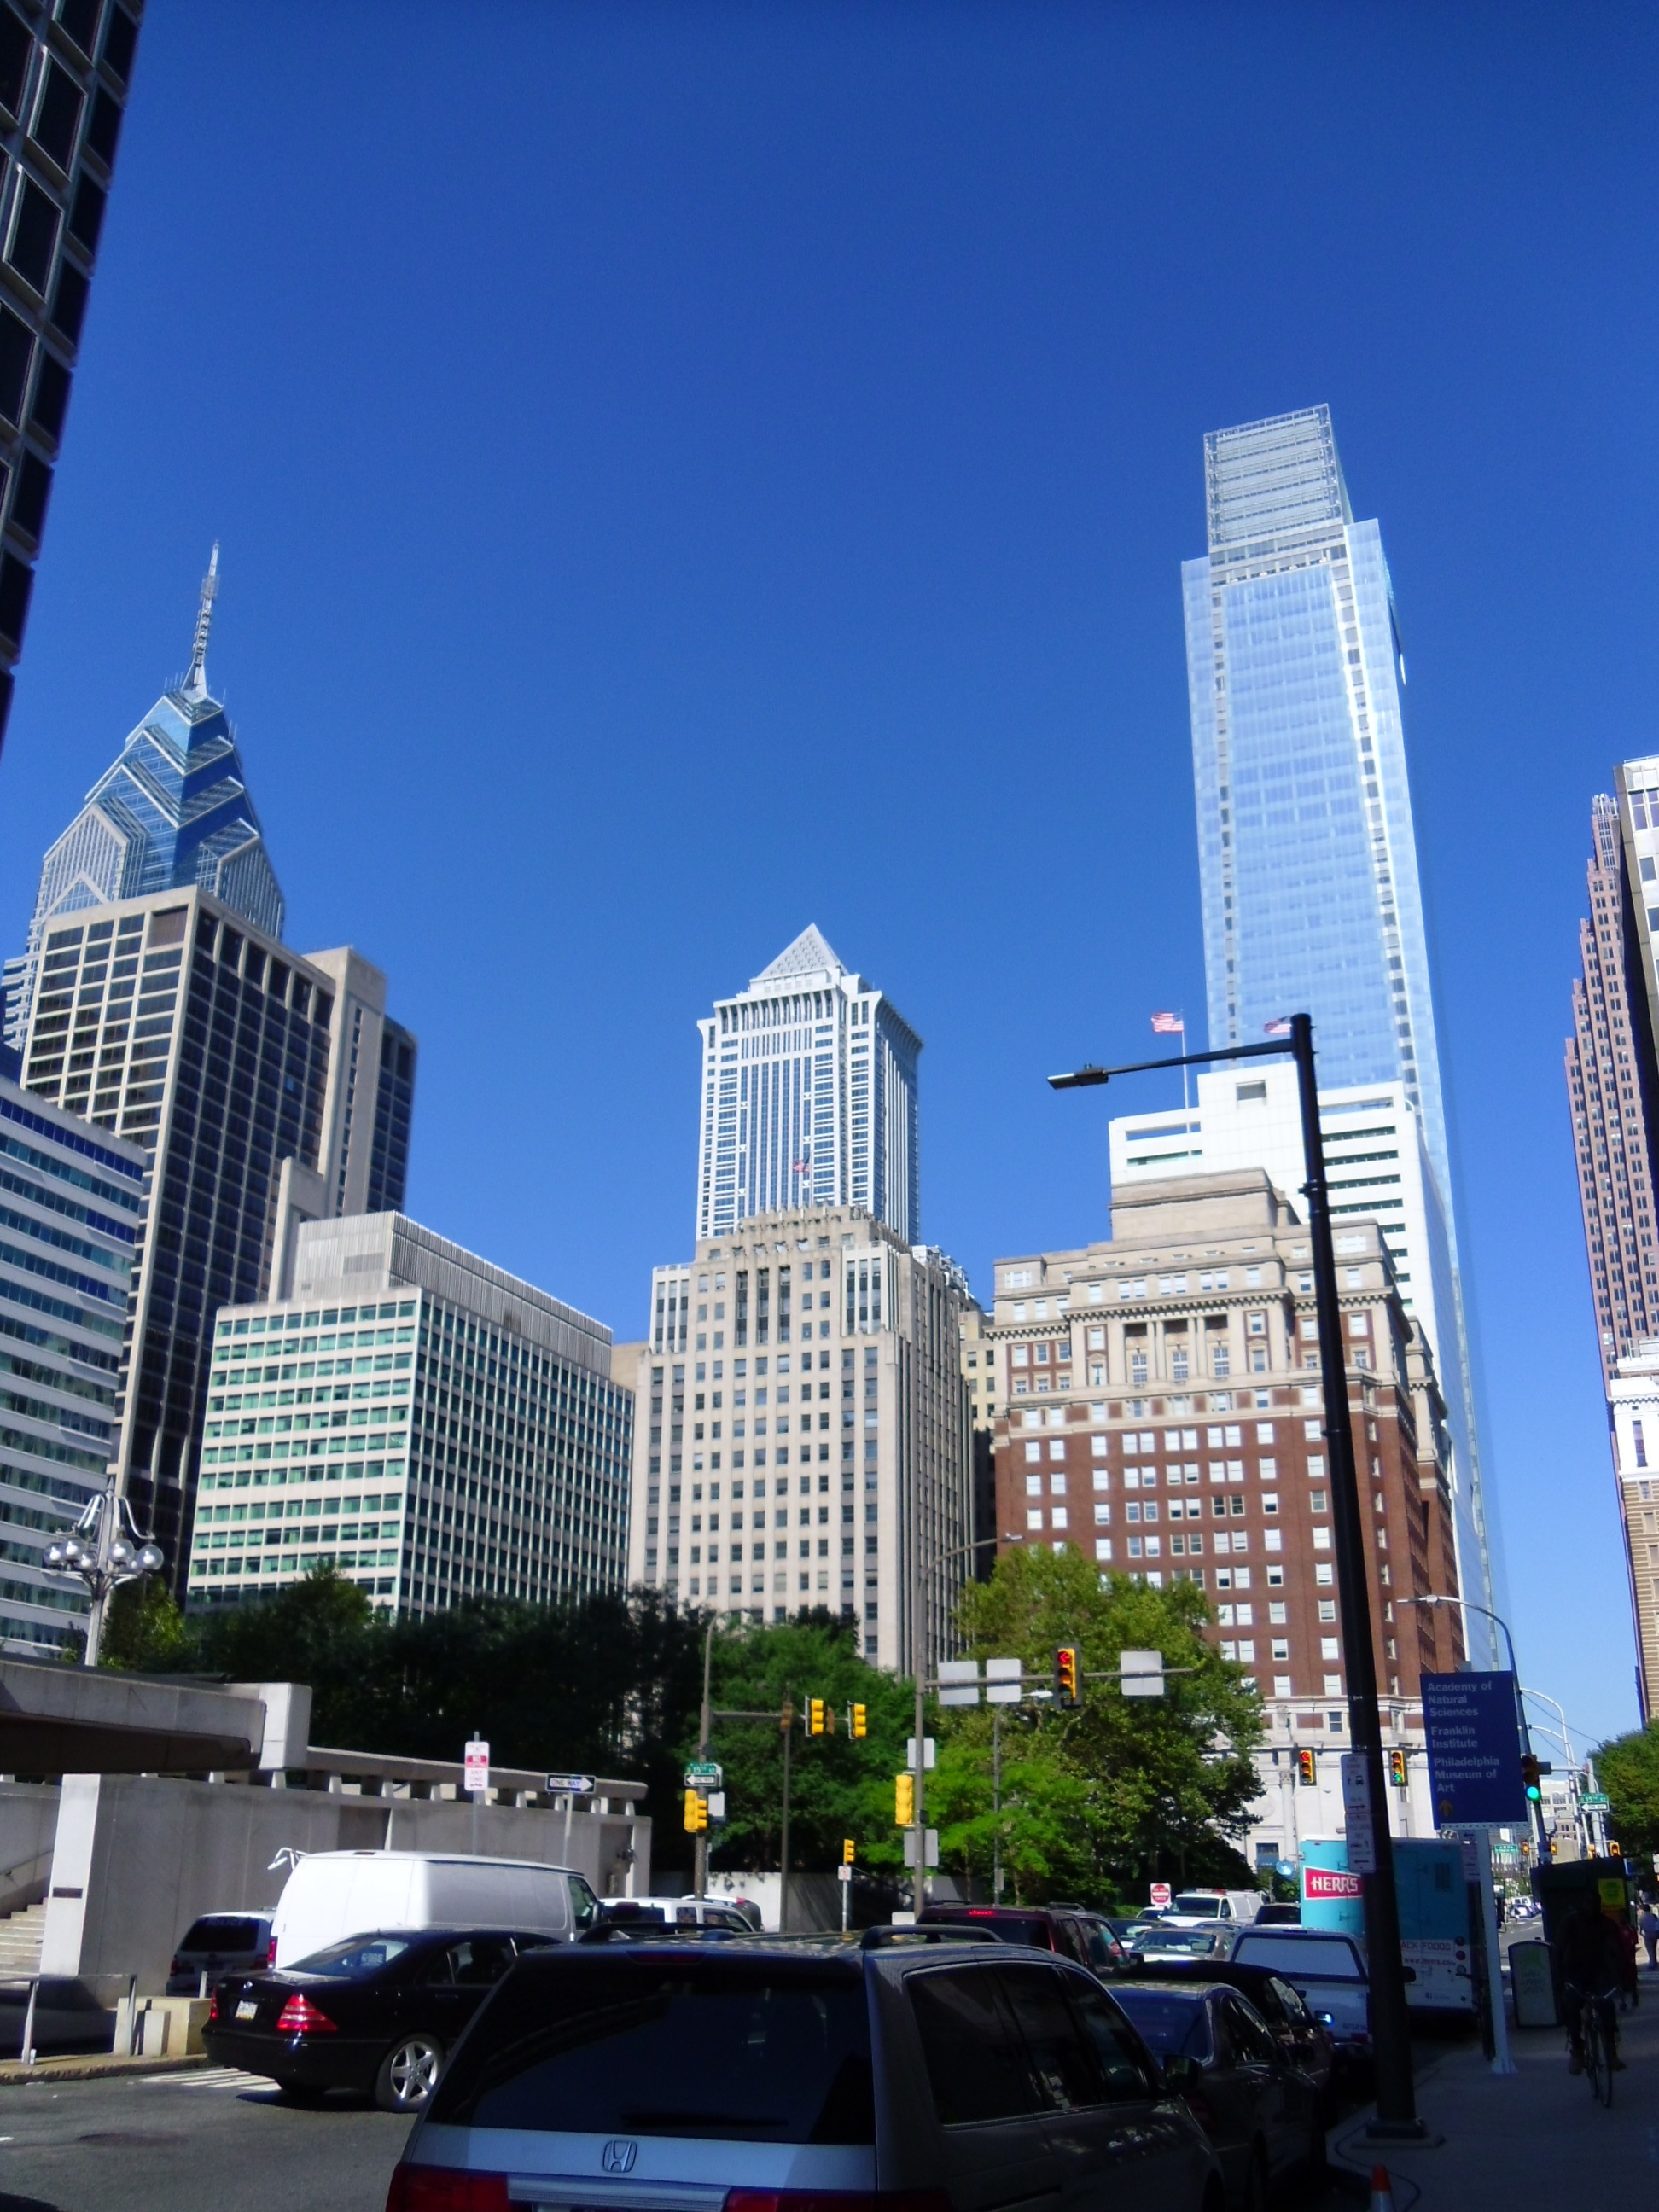 Philadelphia (Pennsylvania, USA)